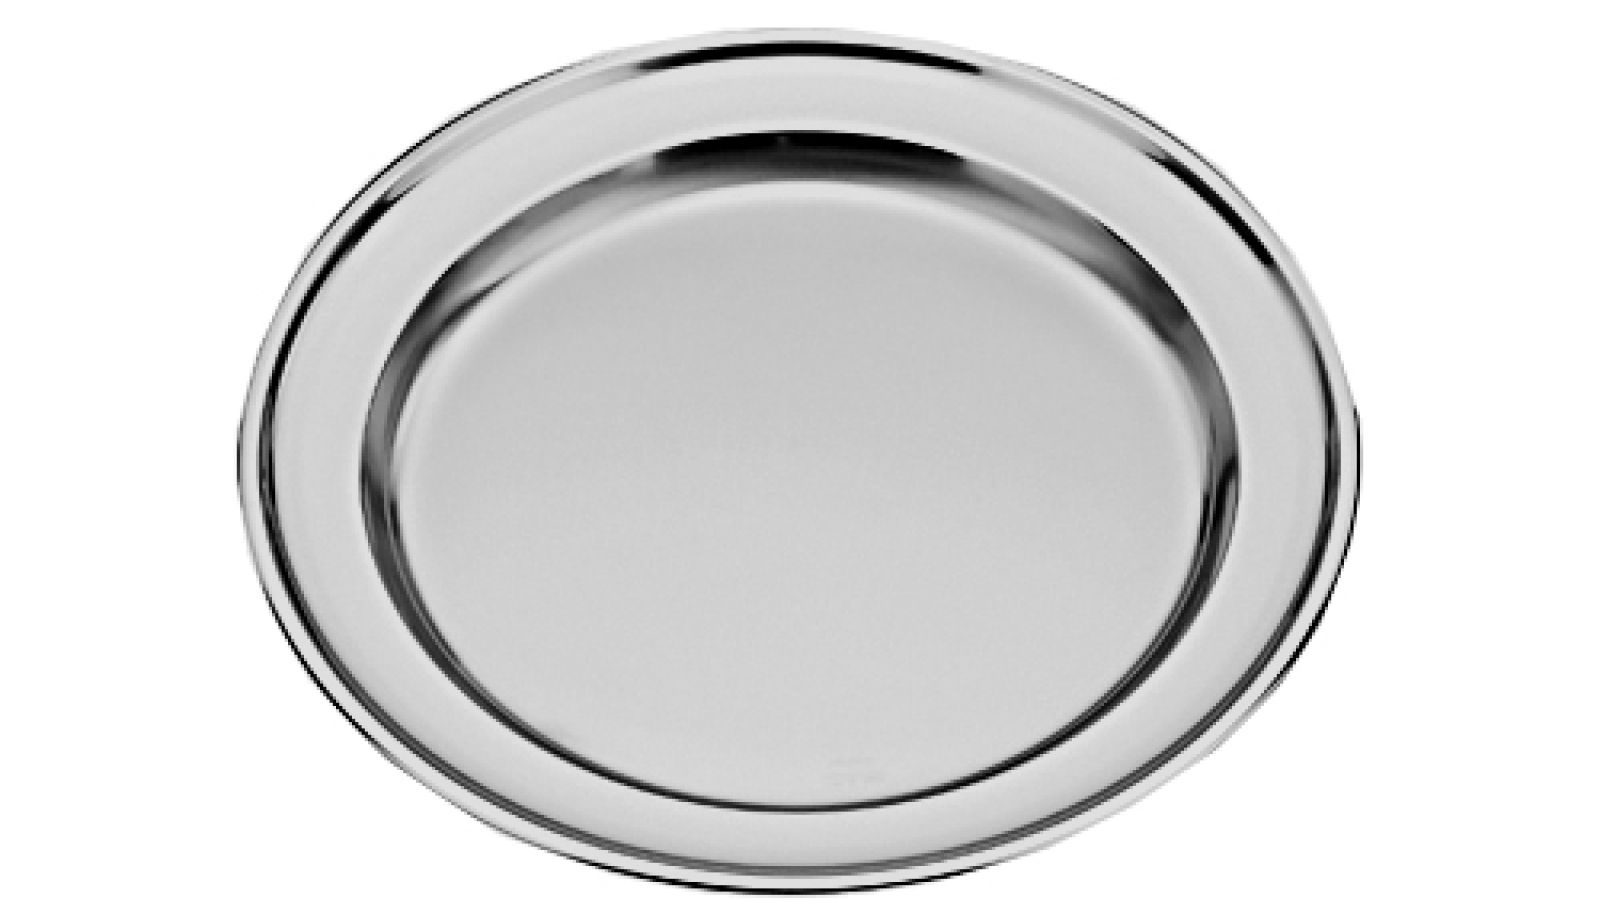 Stainless Steel Round Serving Tray Cm 40 Ipib Forniture Alberghiere